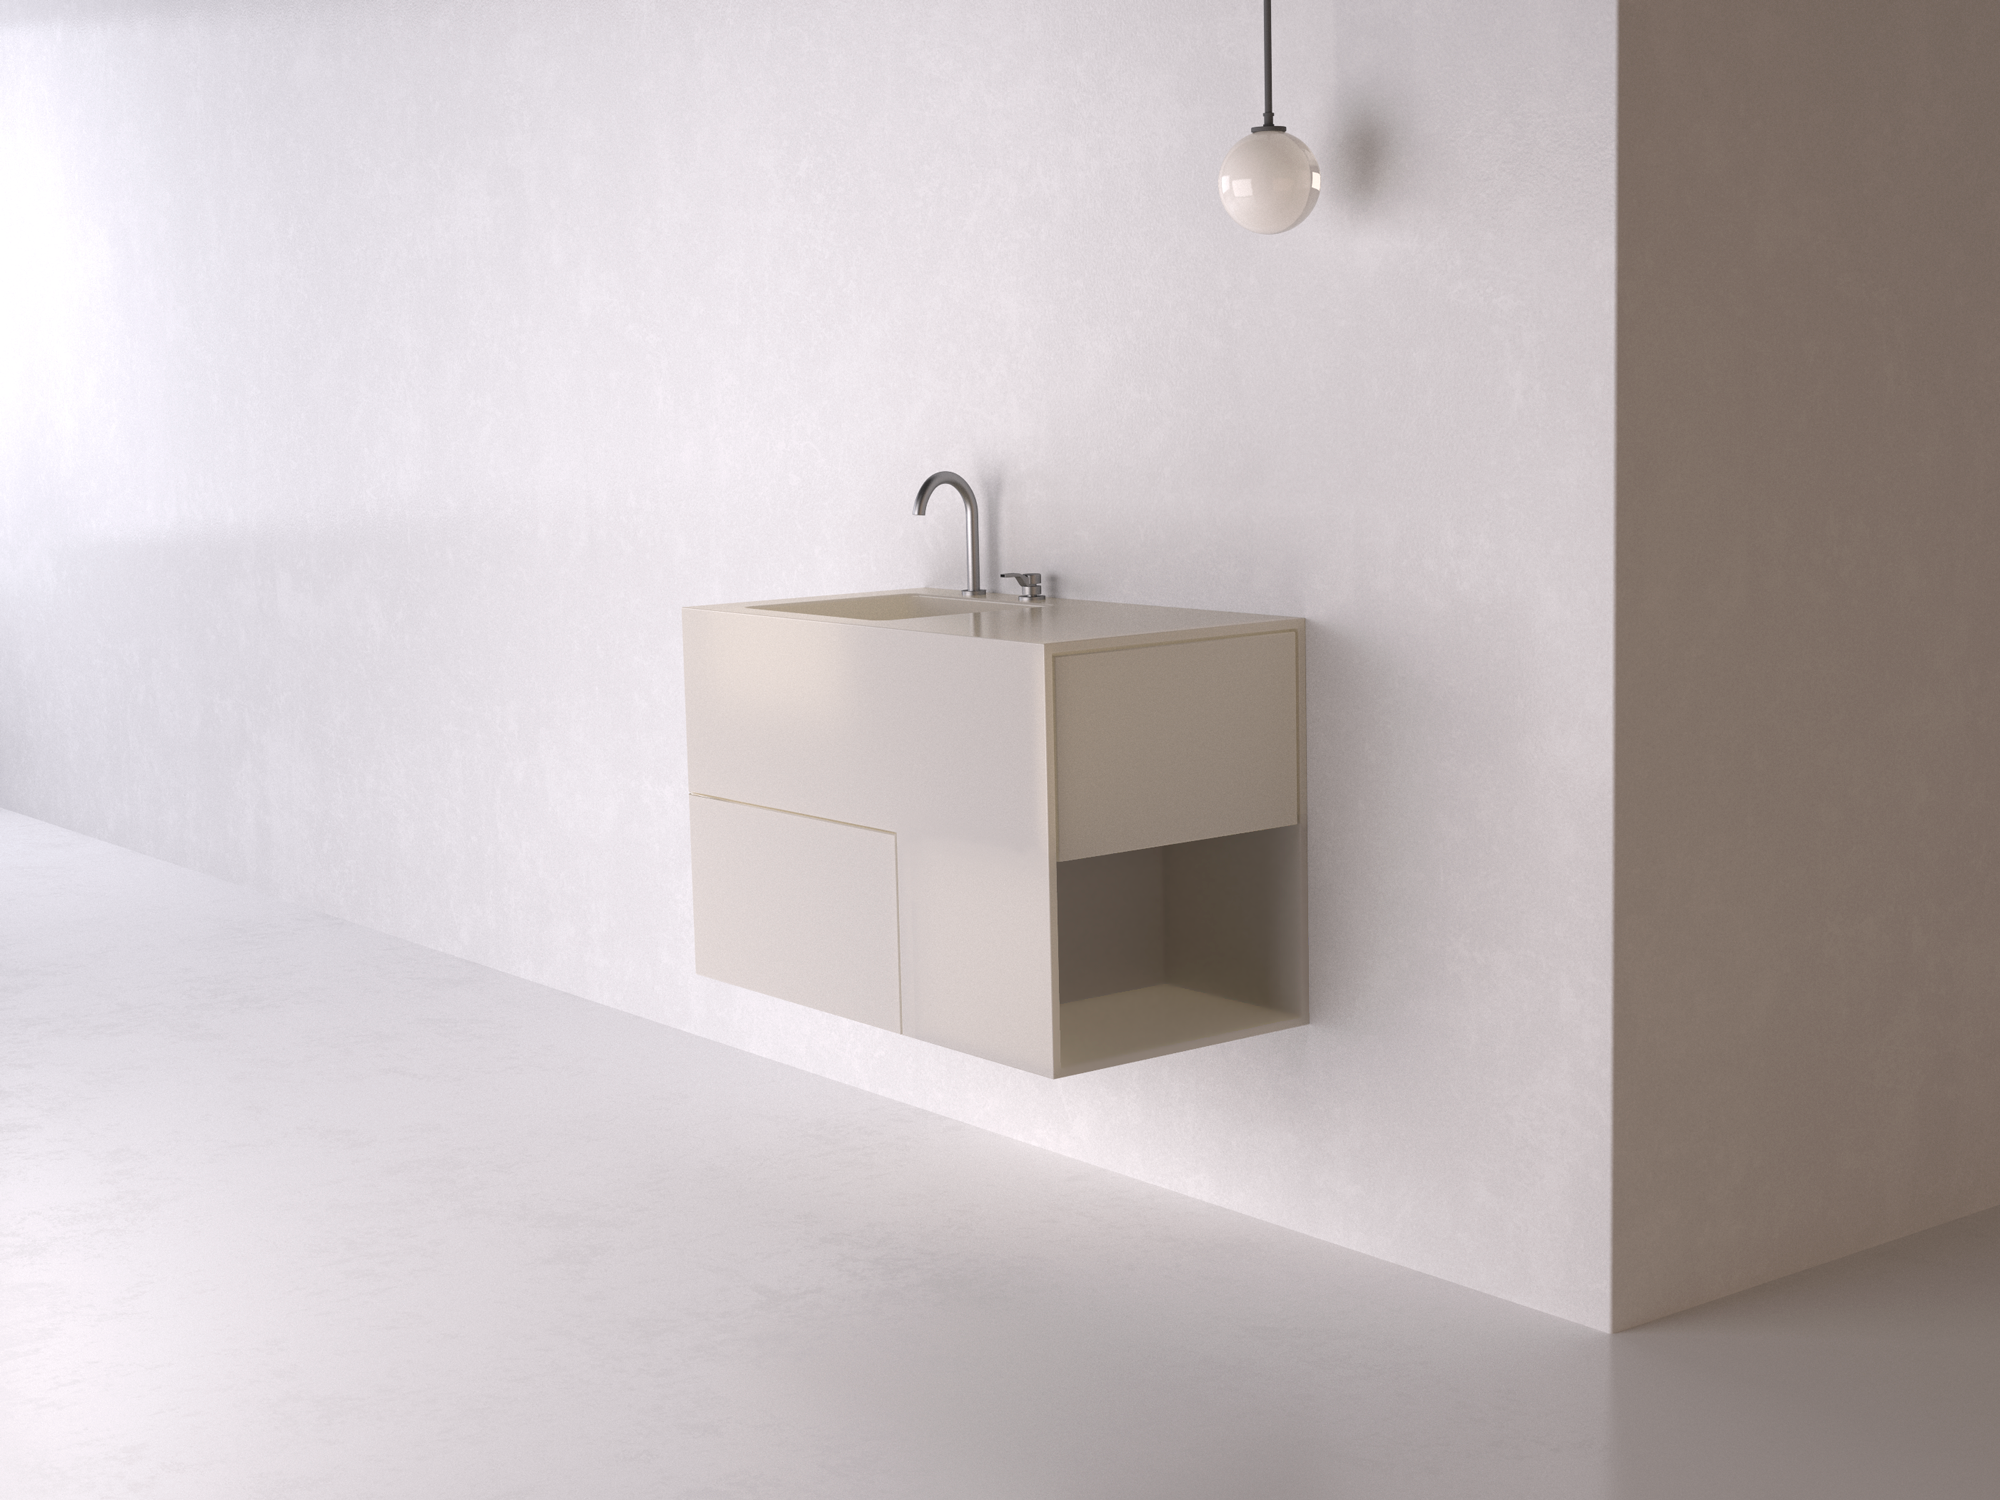 Interior render archives 3d graphicdesign3d graphicdesign for Sketchup bathroom sink